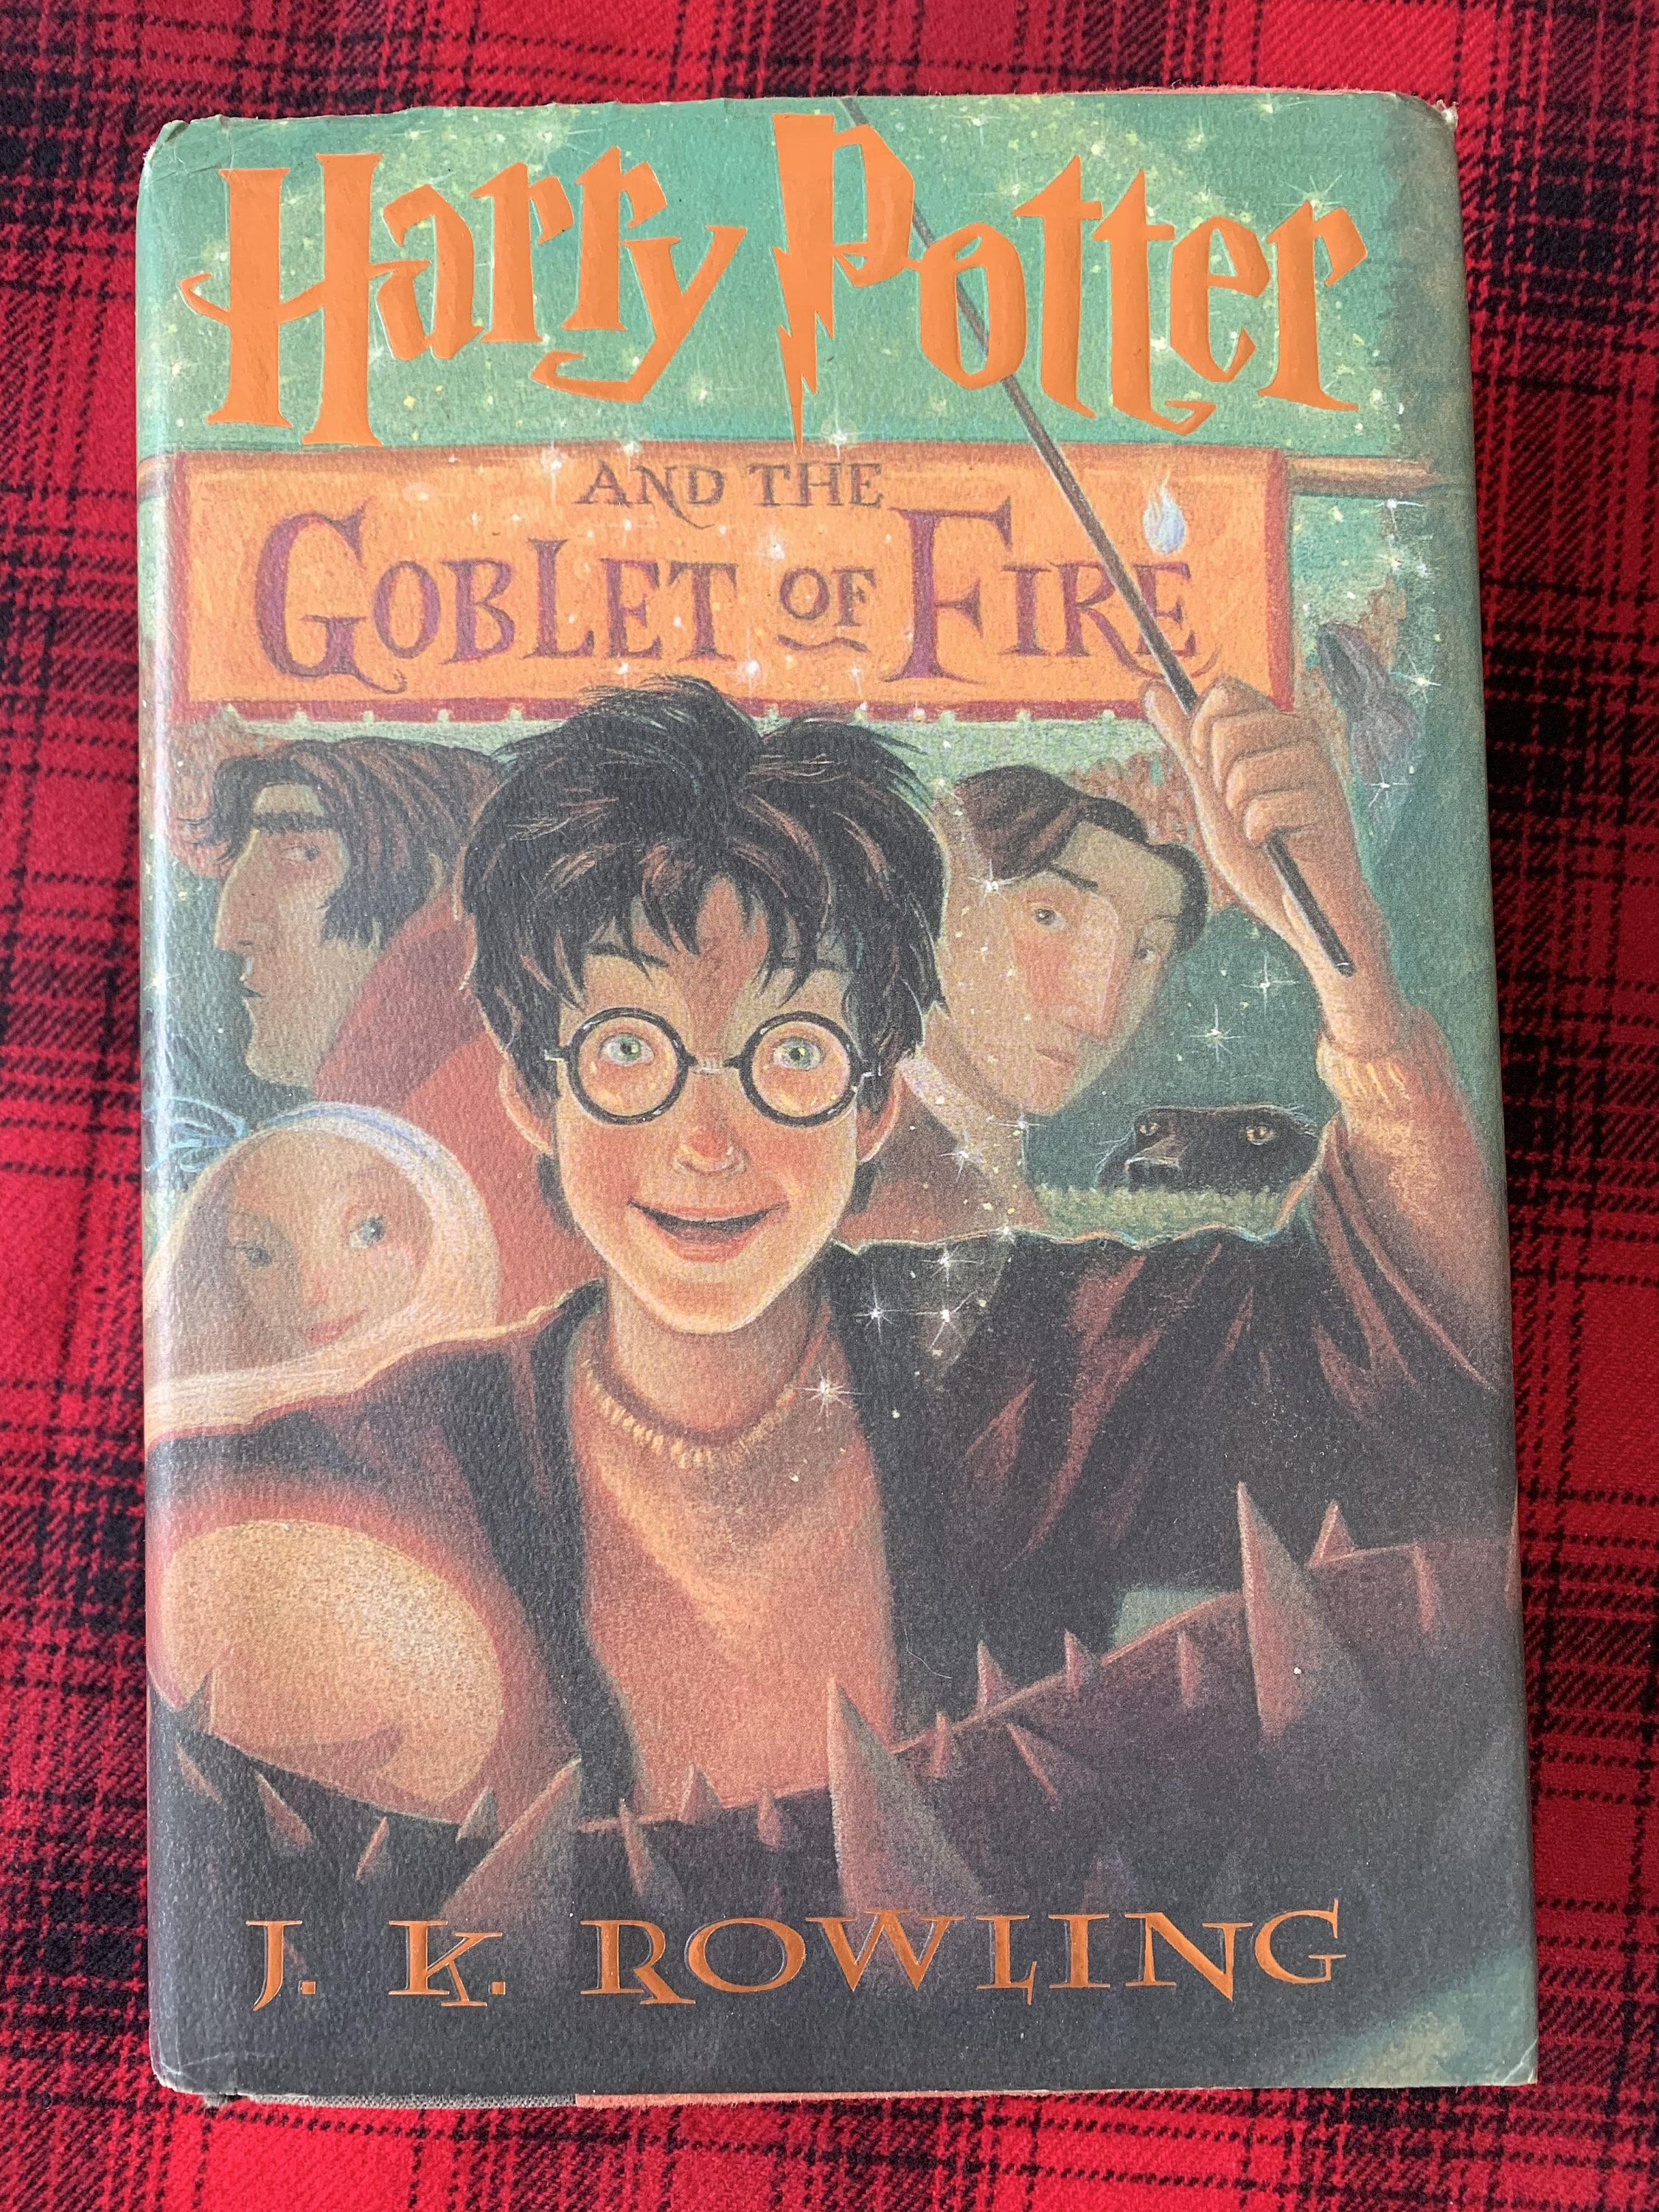 Harry Potter And The Goblet Of Fire J K Rowling Hardcover Etsy Little Golden Books Mysterious Events Potter